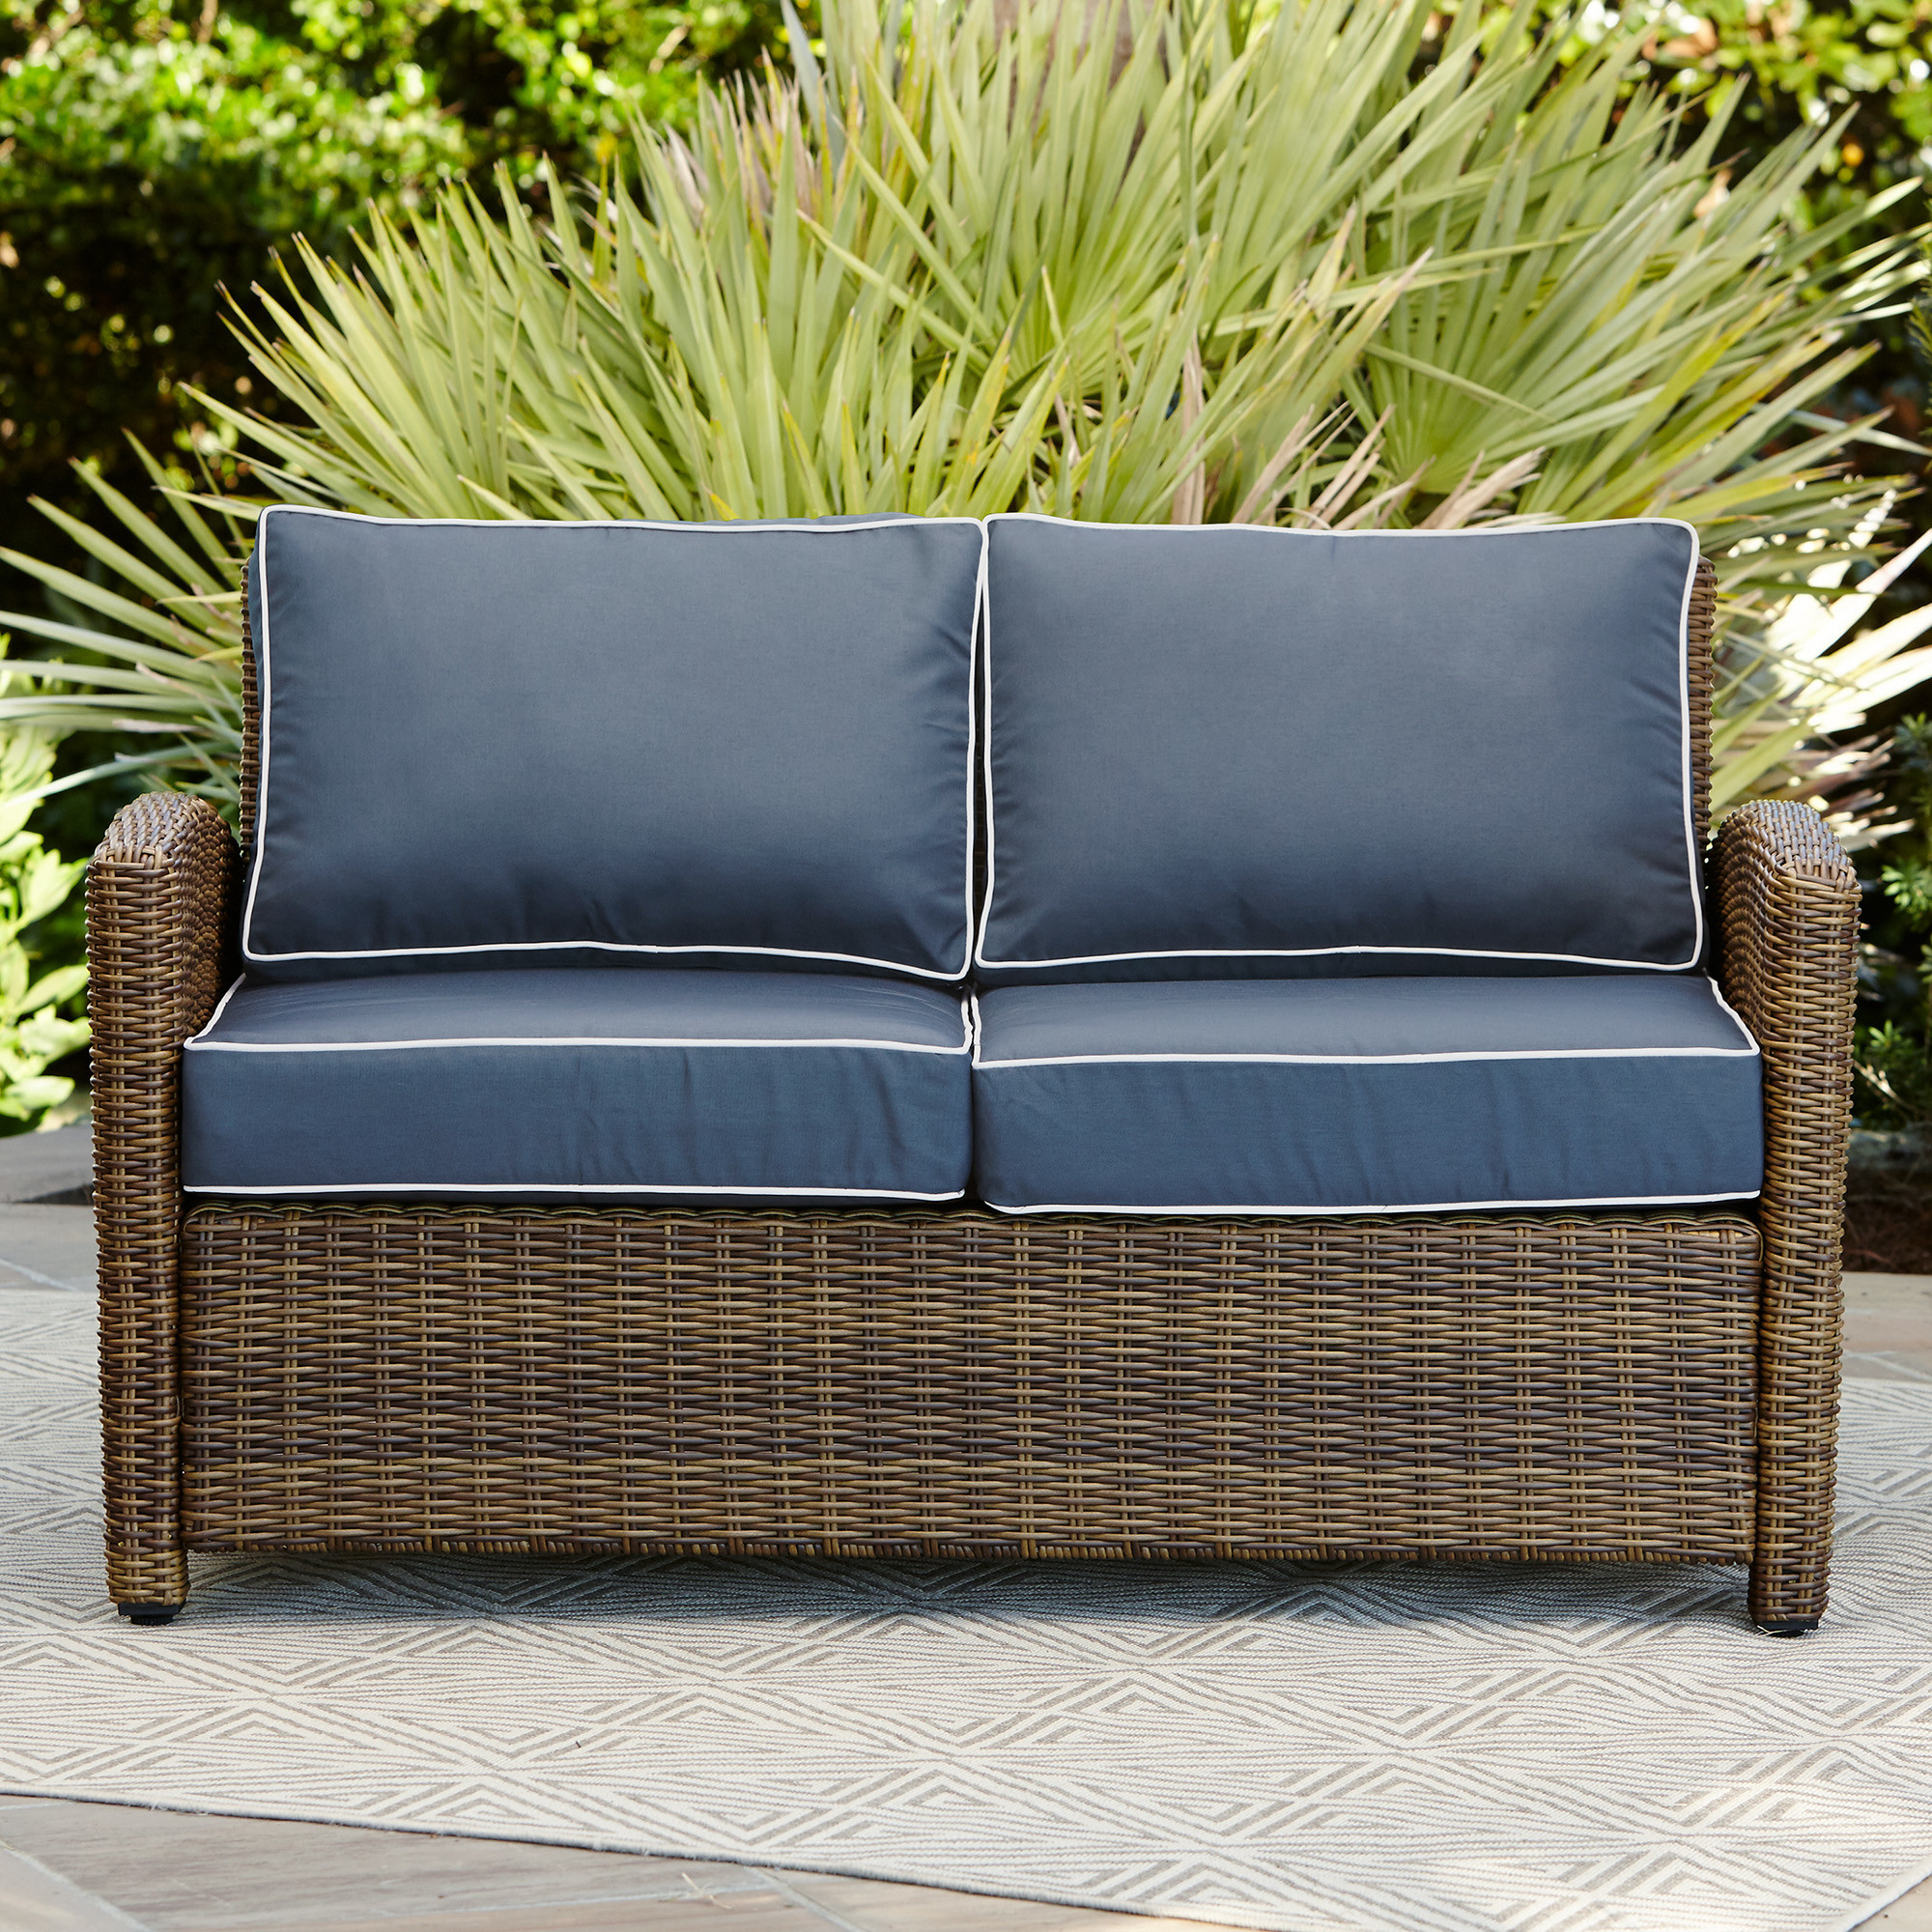 Recent Furniture: Mesmerizing Wicker Loveseat For Outdoor Or Indoor Throughout Lawson Wicker Loveseats With Cushions (View 9 of 25)